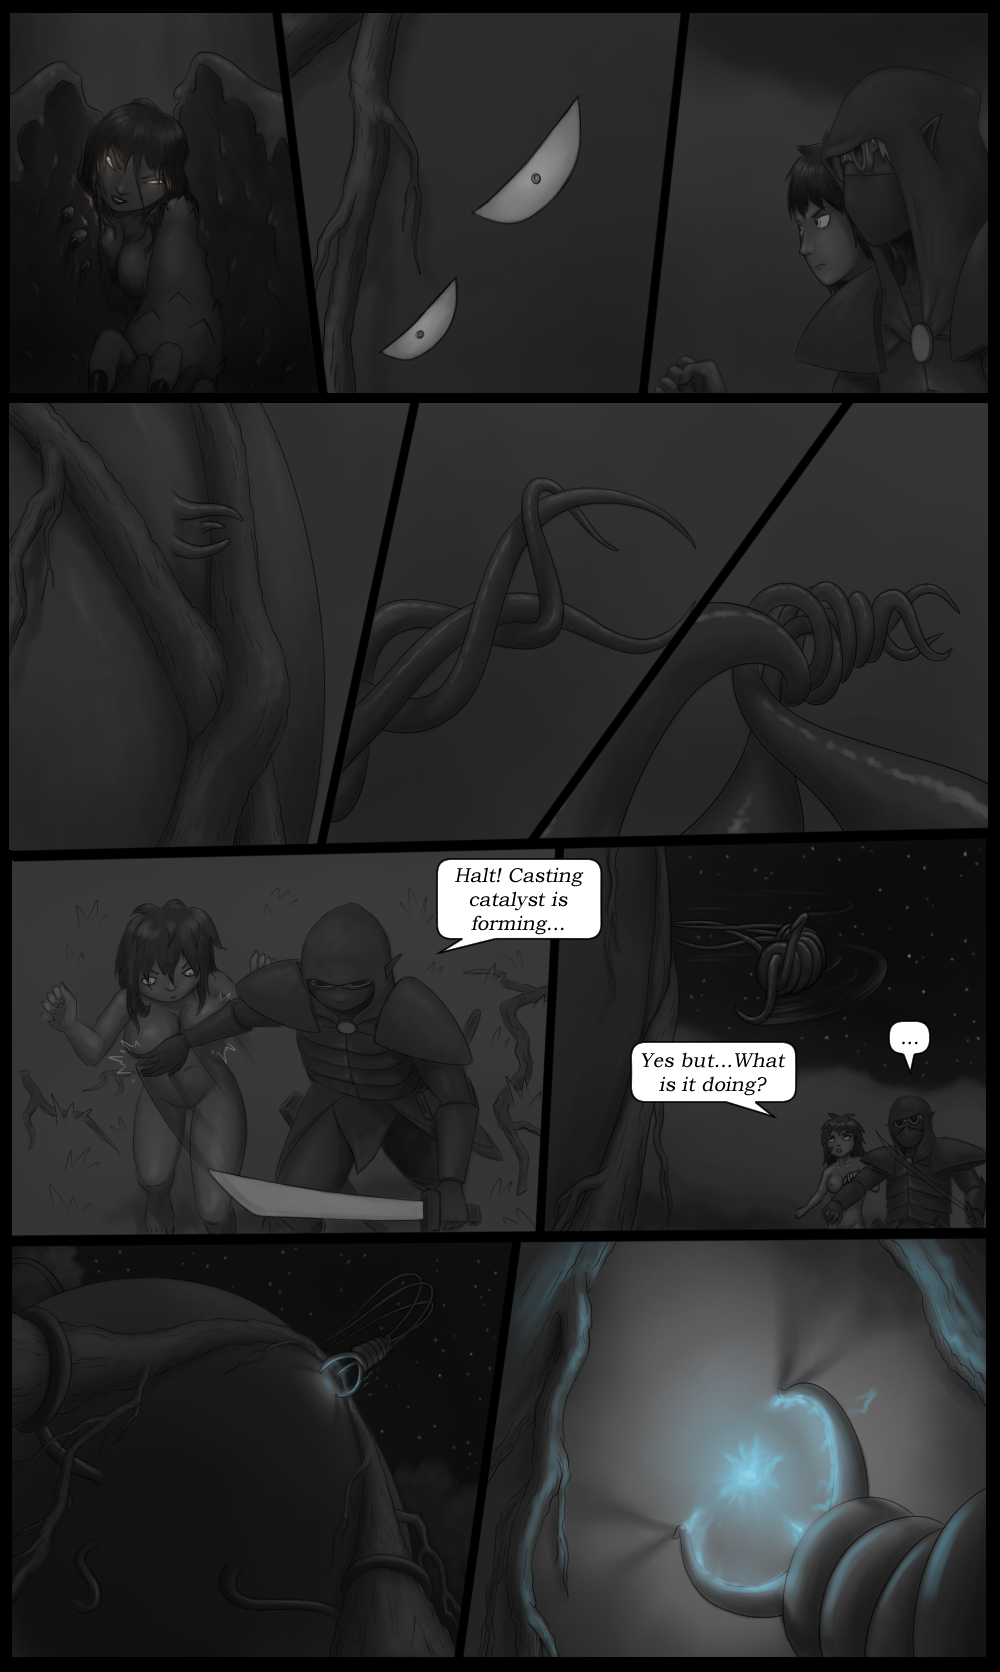 Page 103 - On its own terms